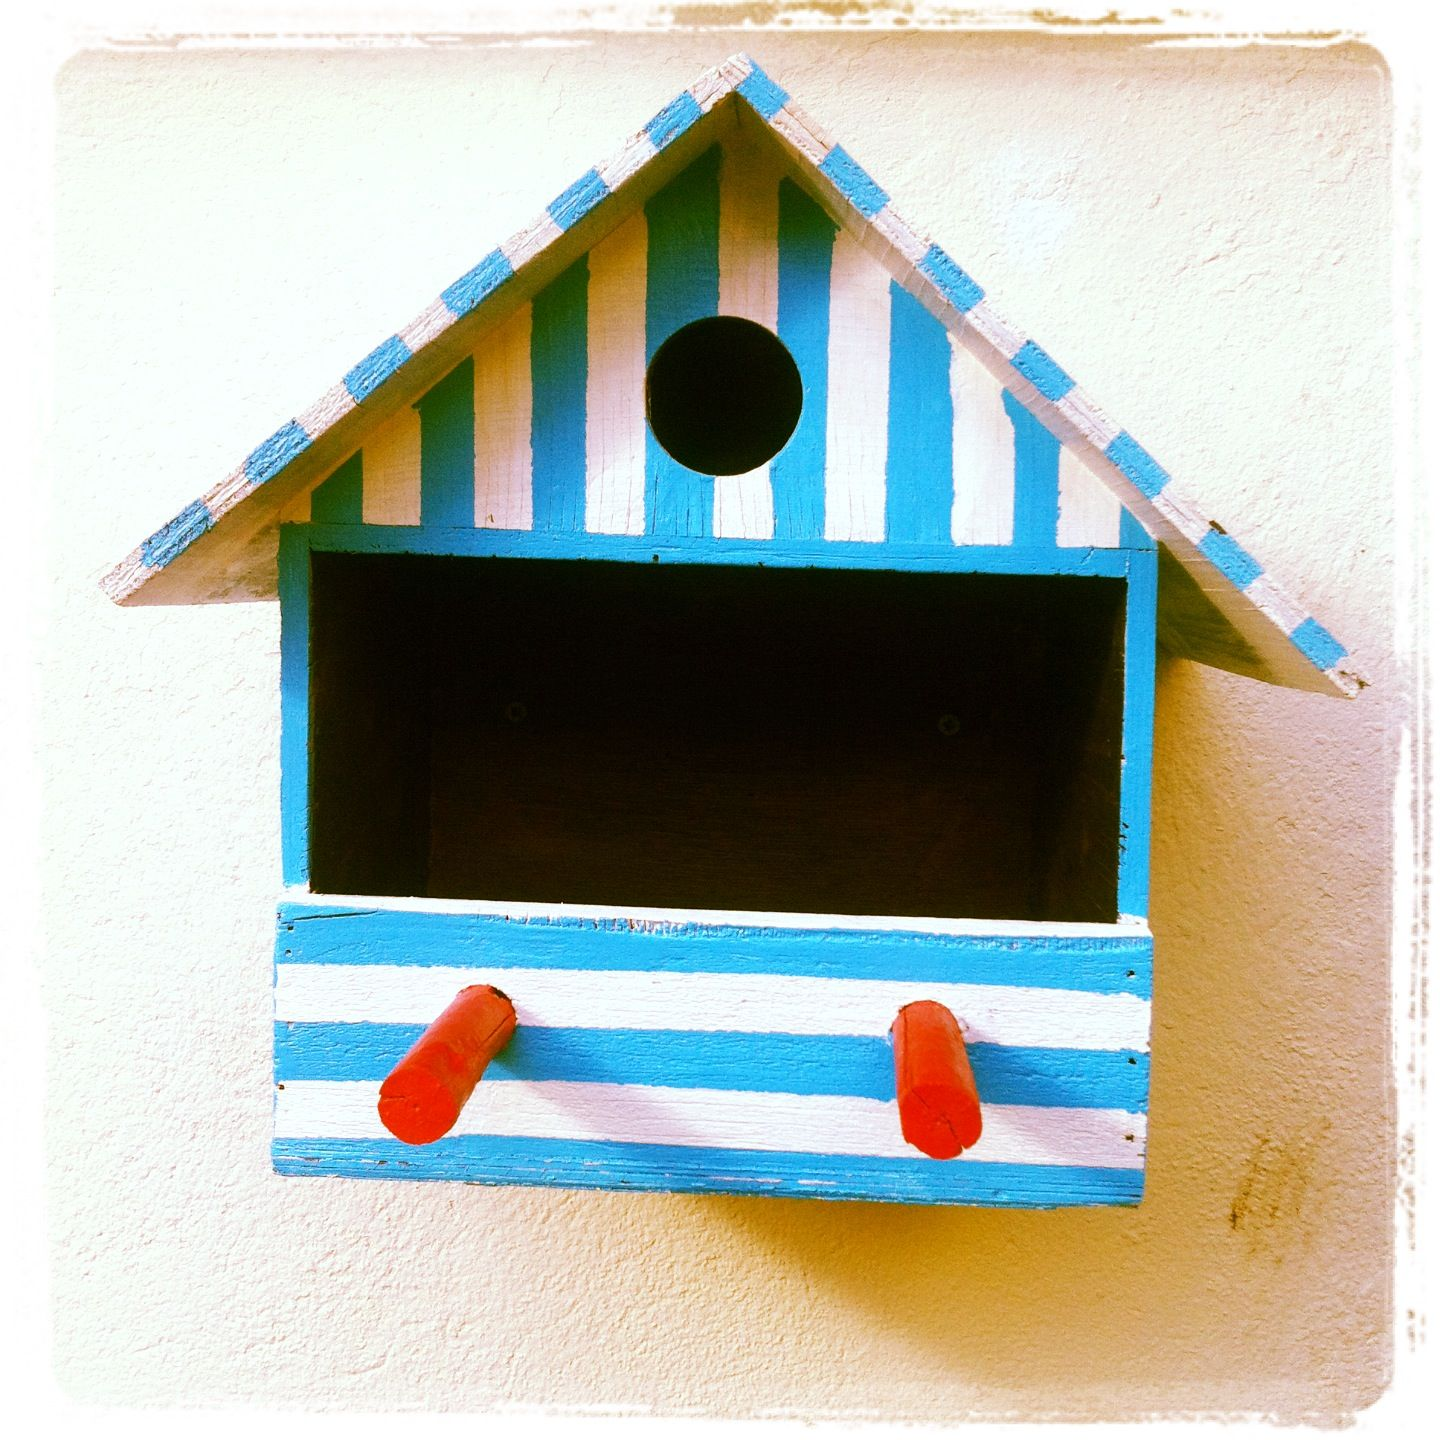 Ma Petite Maison D Oiseau Personnalise By Tweet La Sista Niche Oiseau Rayure Outdoor Decor Bird House Decor